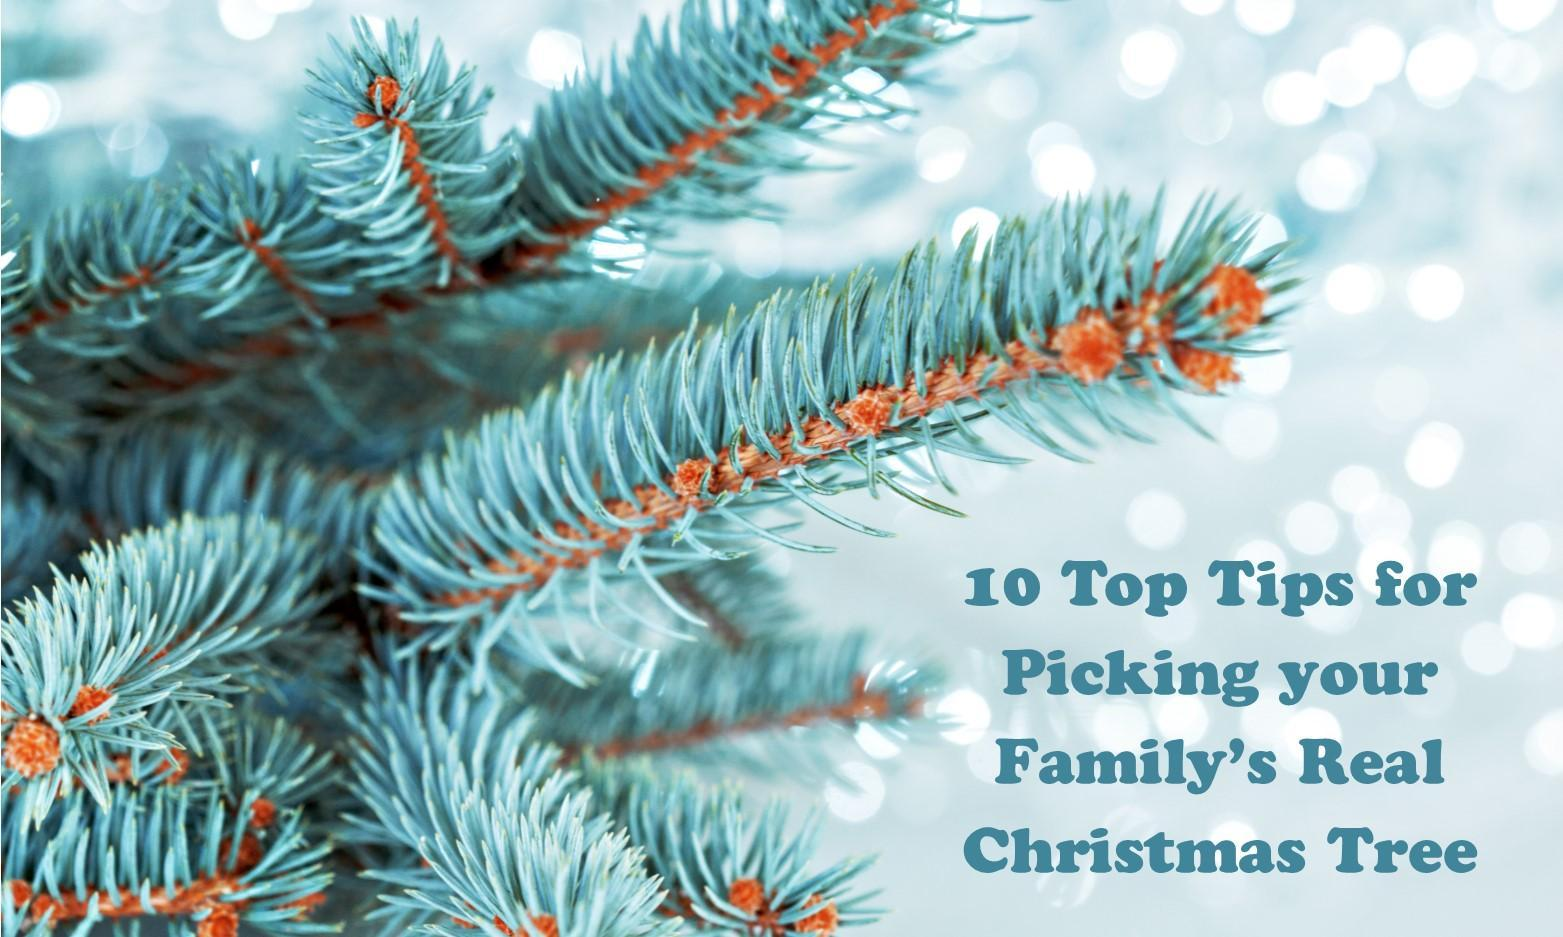 10 Top Tips for Picking your Family's Real Christmas Tree